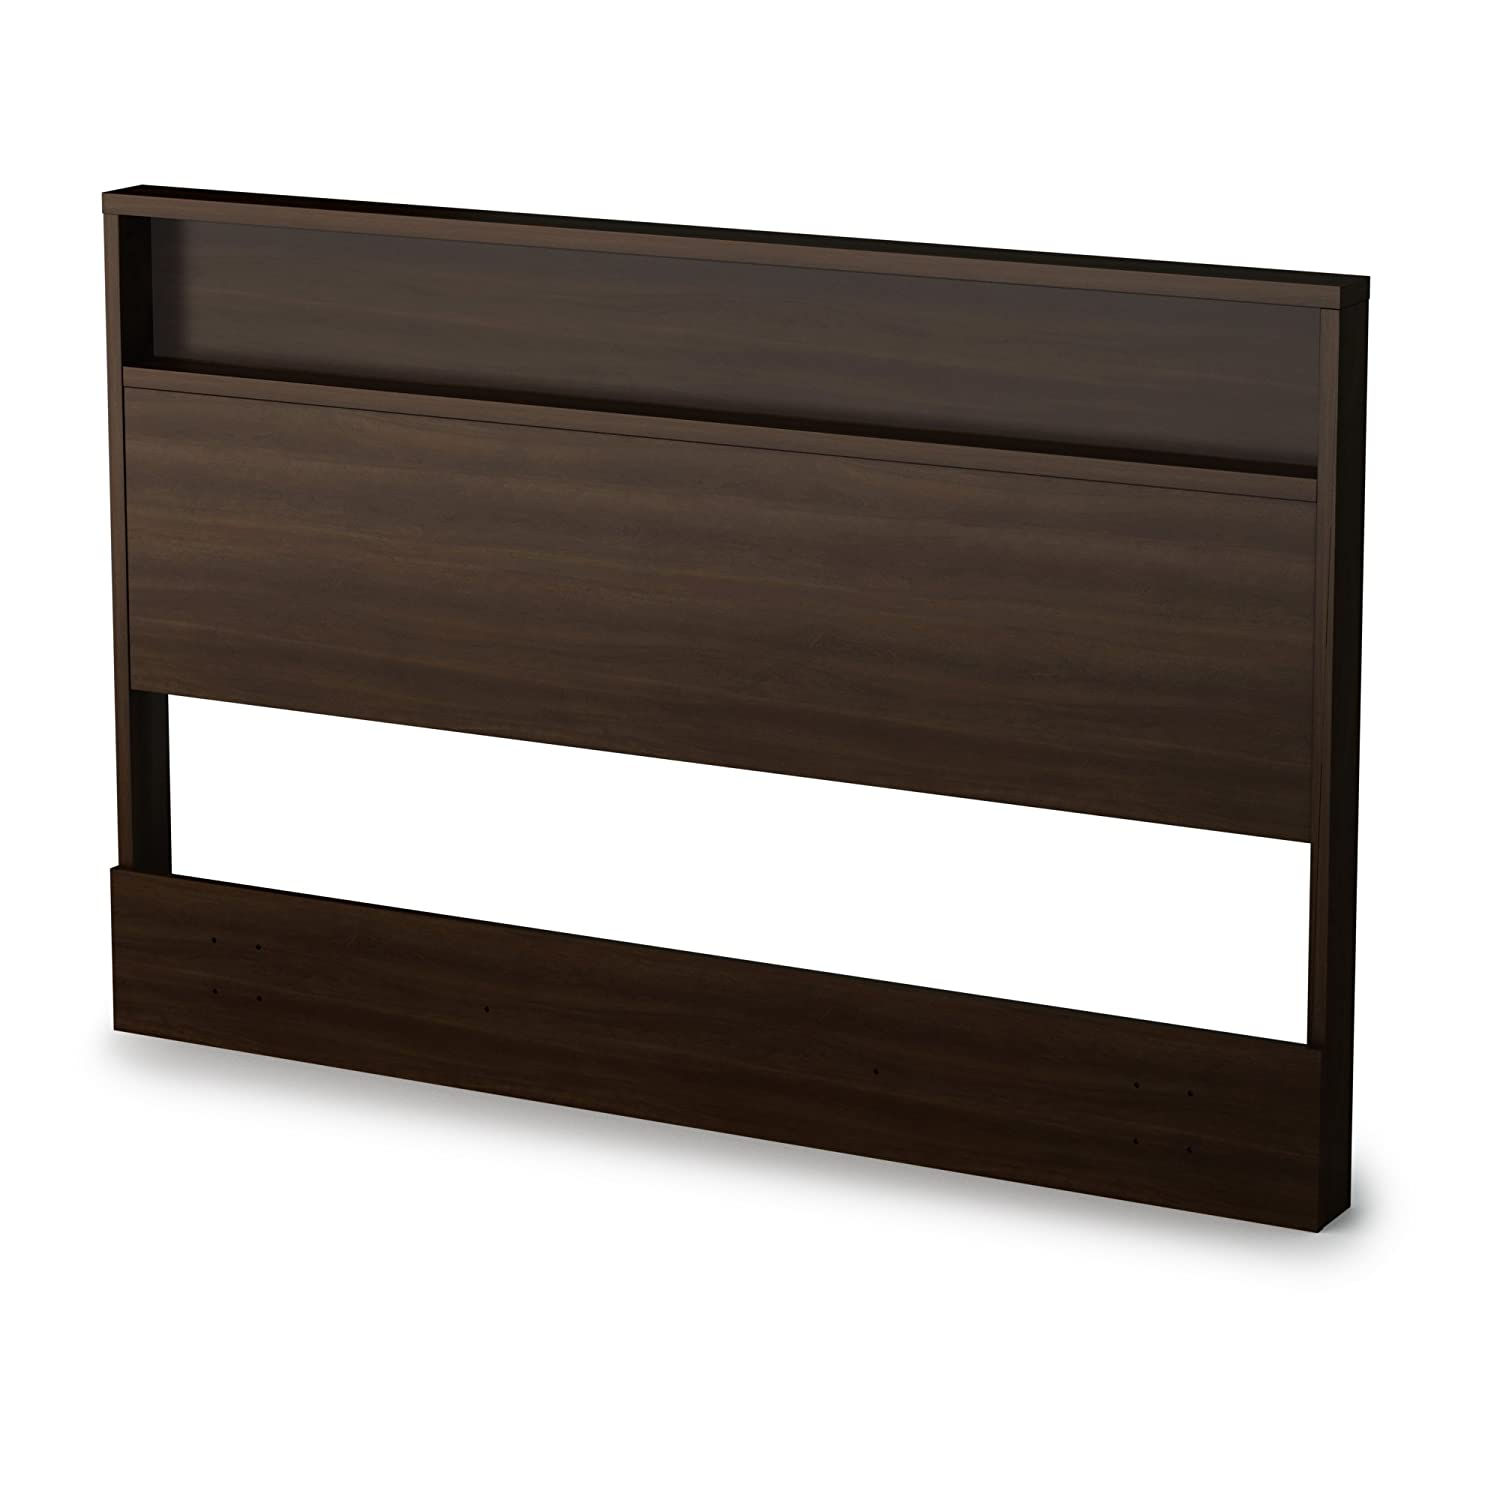 South Shore Trinity Collection Headboard Mocha - Full-Queen